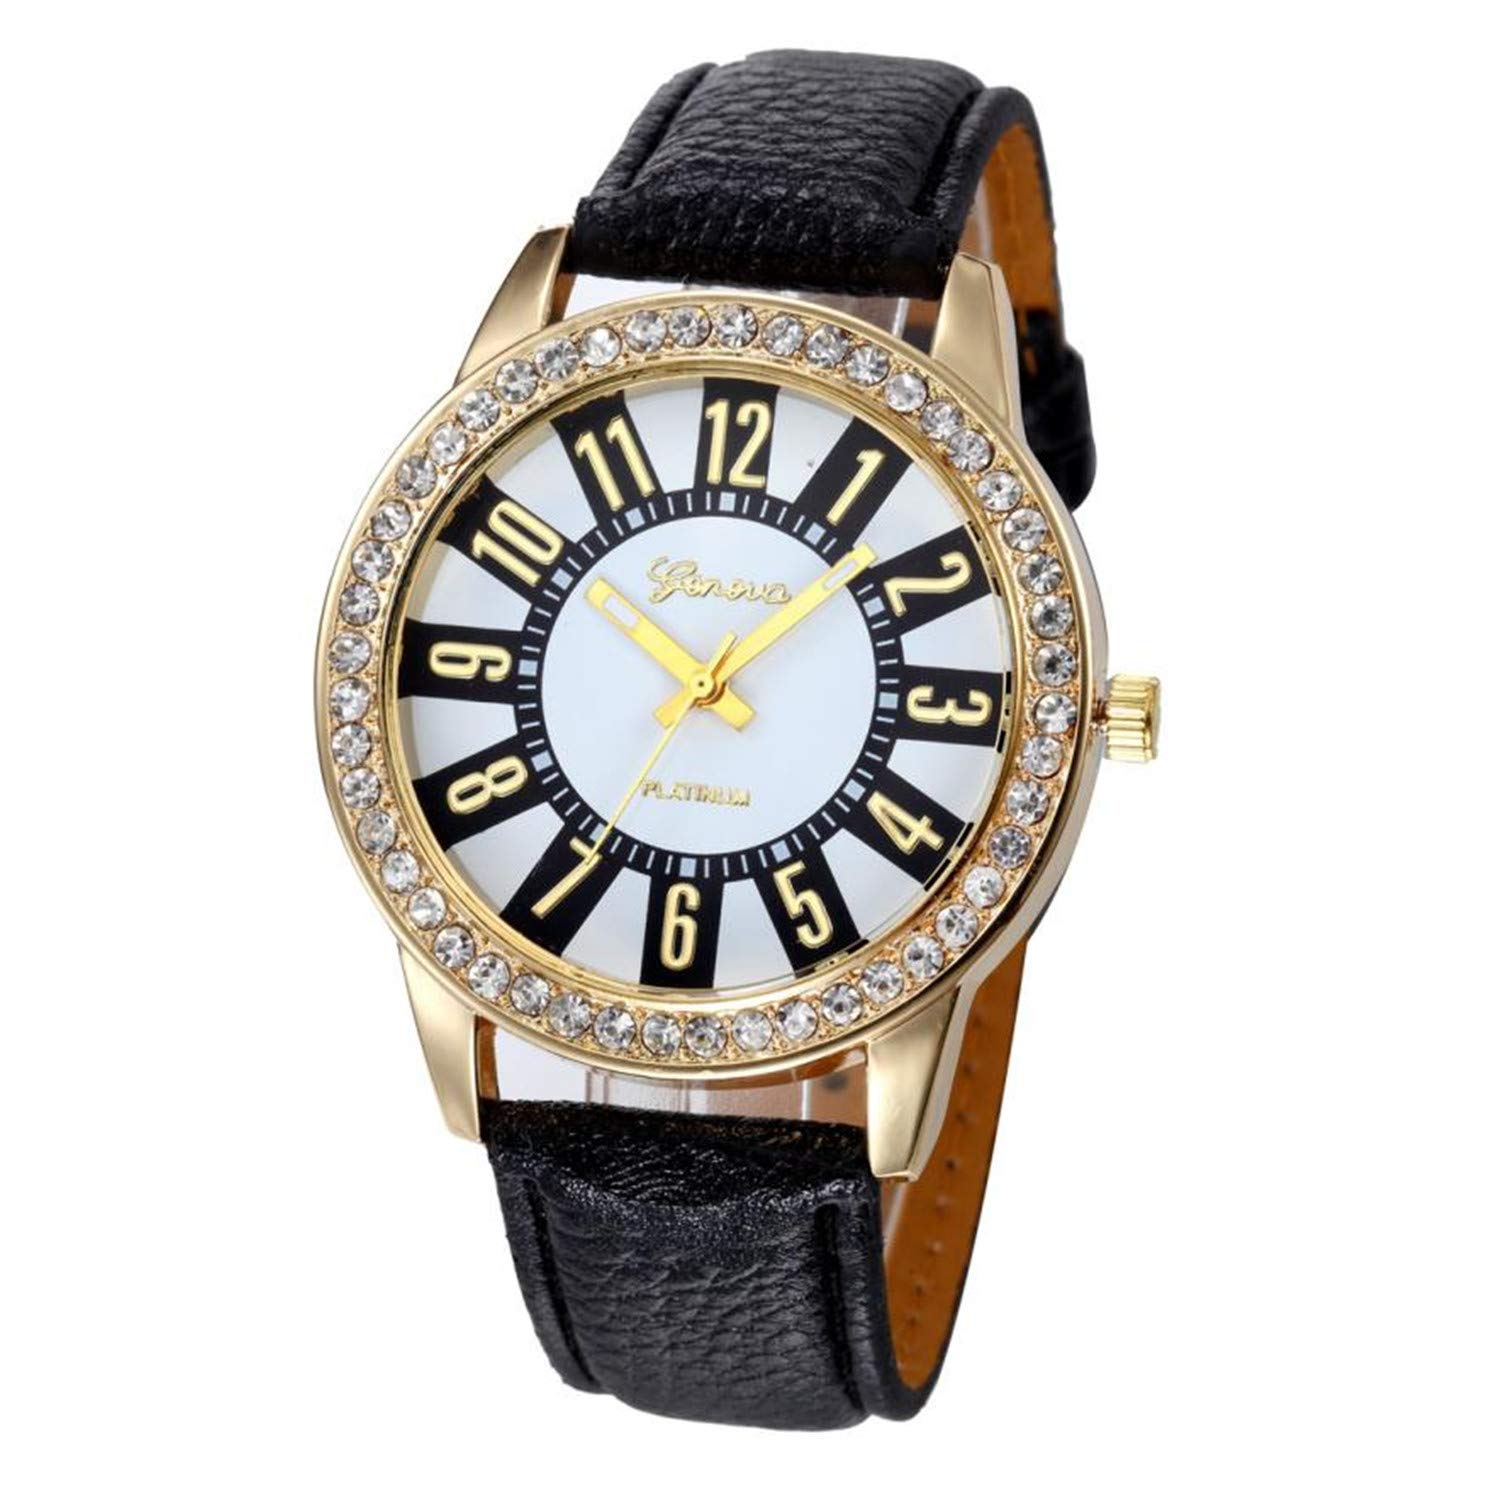 Amazon.com : sportsmanship Fashion Womens Geneva Watches ...